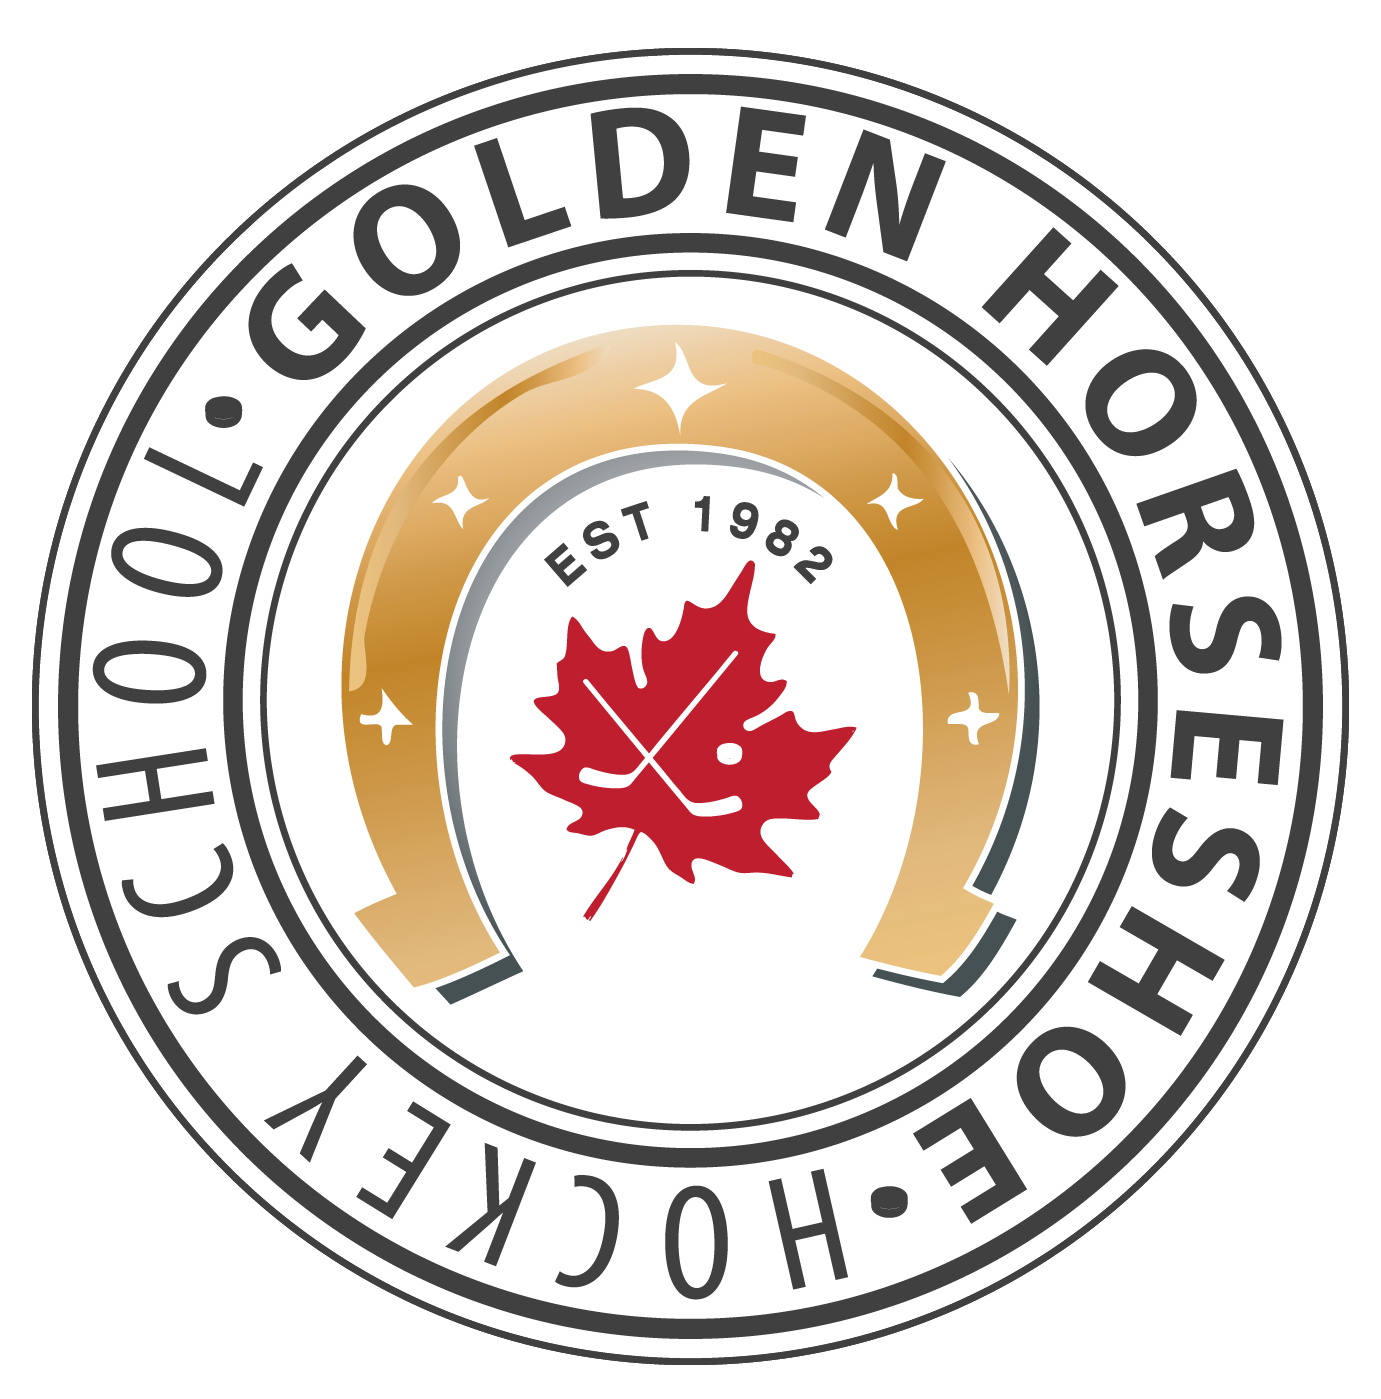 Golden Horseshoe Hockey